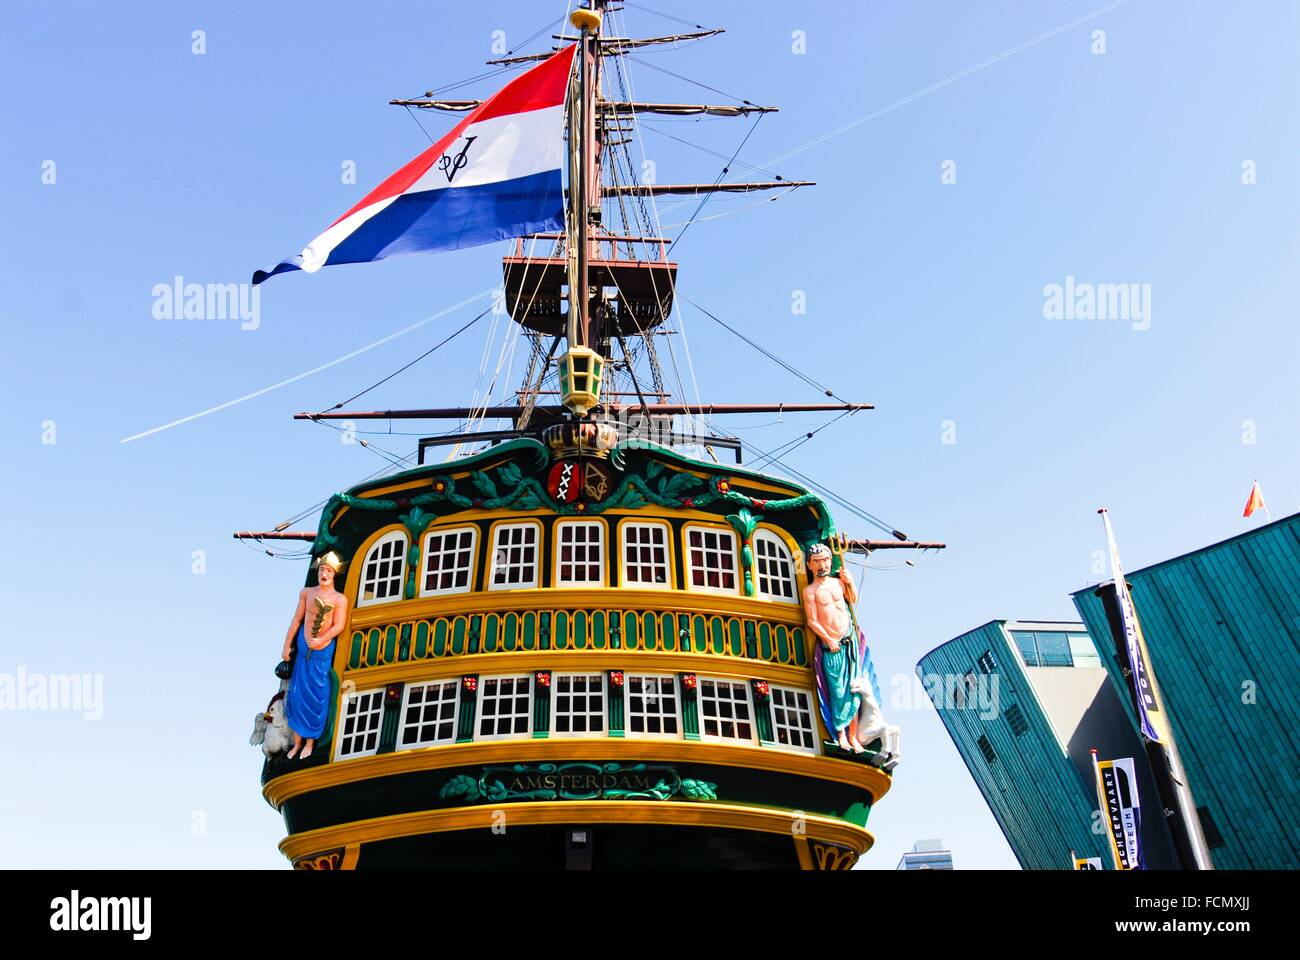 Maritime Museum and Dutch East India Company (VOC) ship, replica of the cargo ship from 1740, Amsterdam, Netherlands, - Stock Image